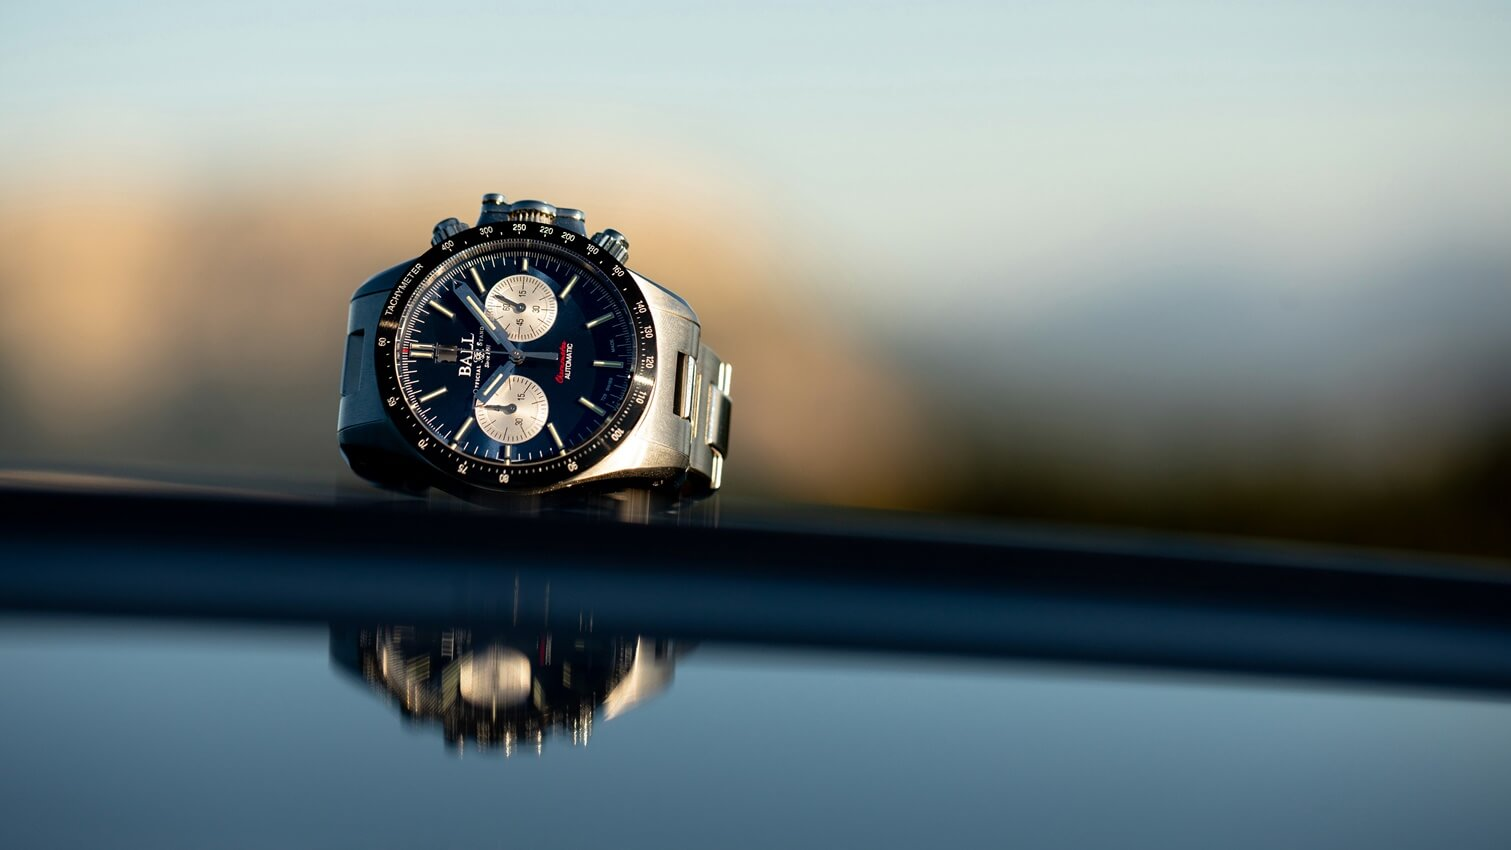 BALL Engineer Hydrocarbon Racer Chronograph